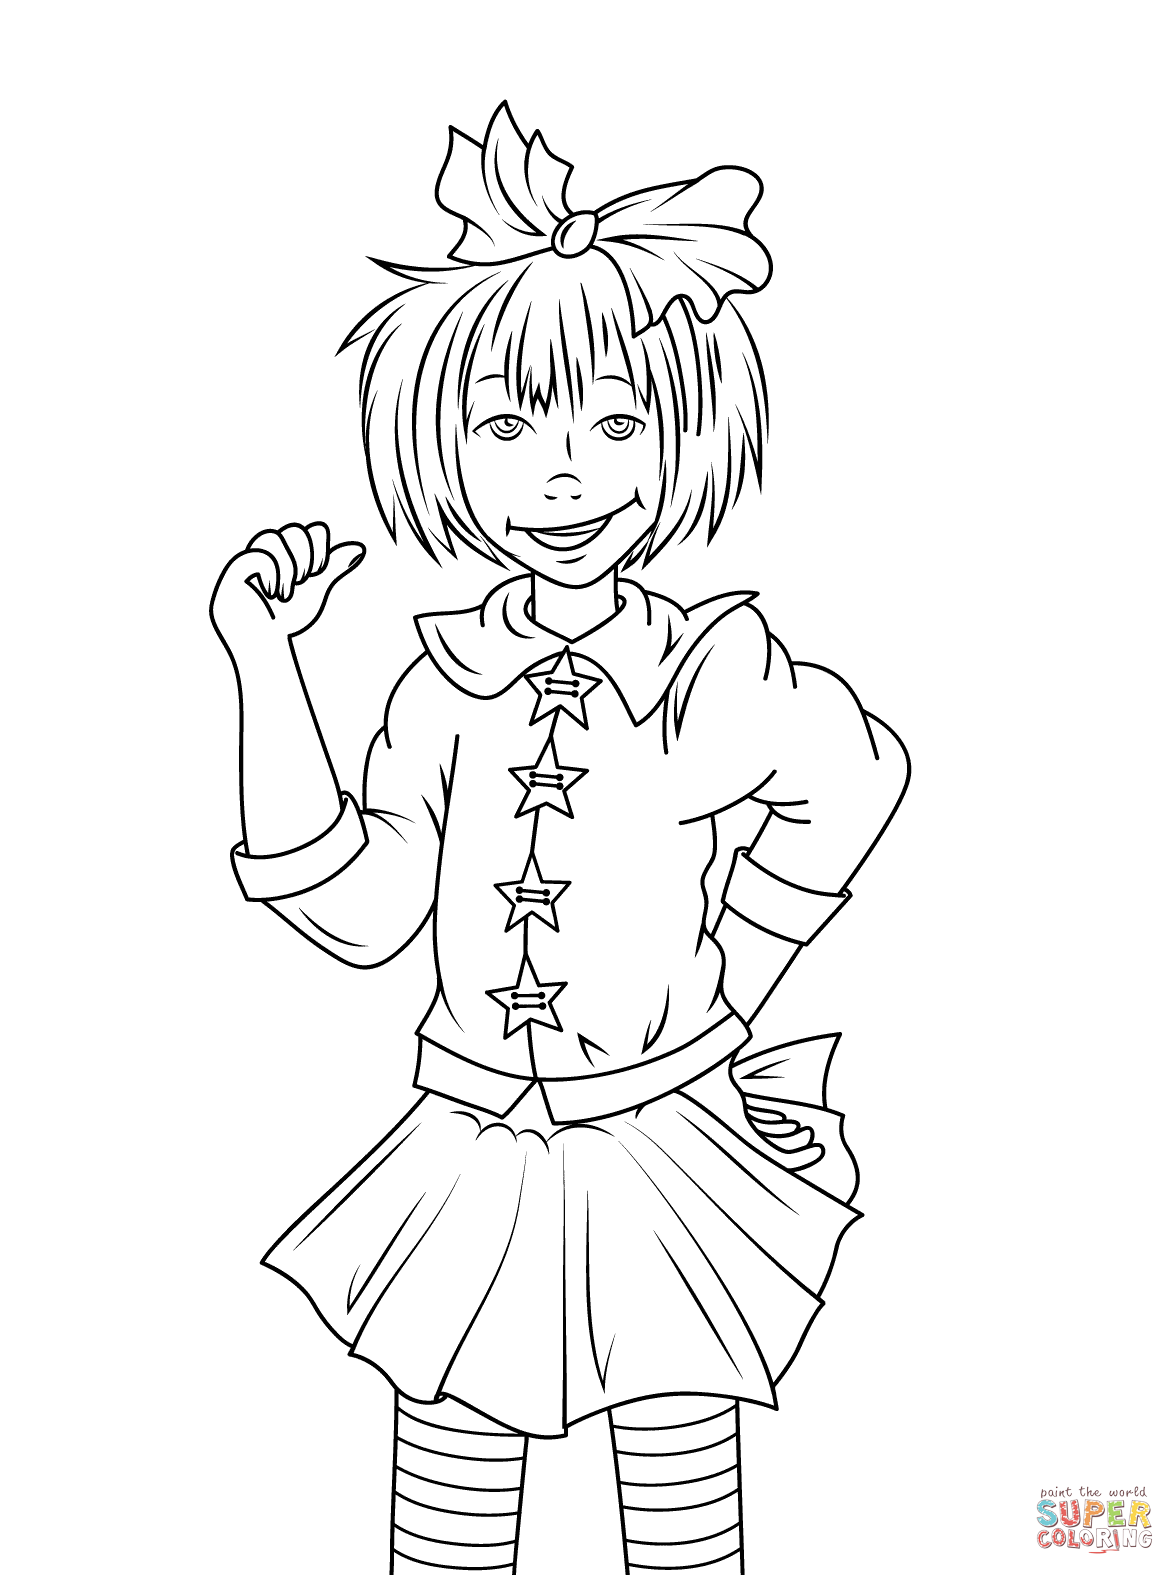 Junie B Jones Coloring Pages Select From 28148 Printable Of Cartoons Animals Nature Bible And Many More